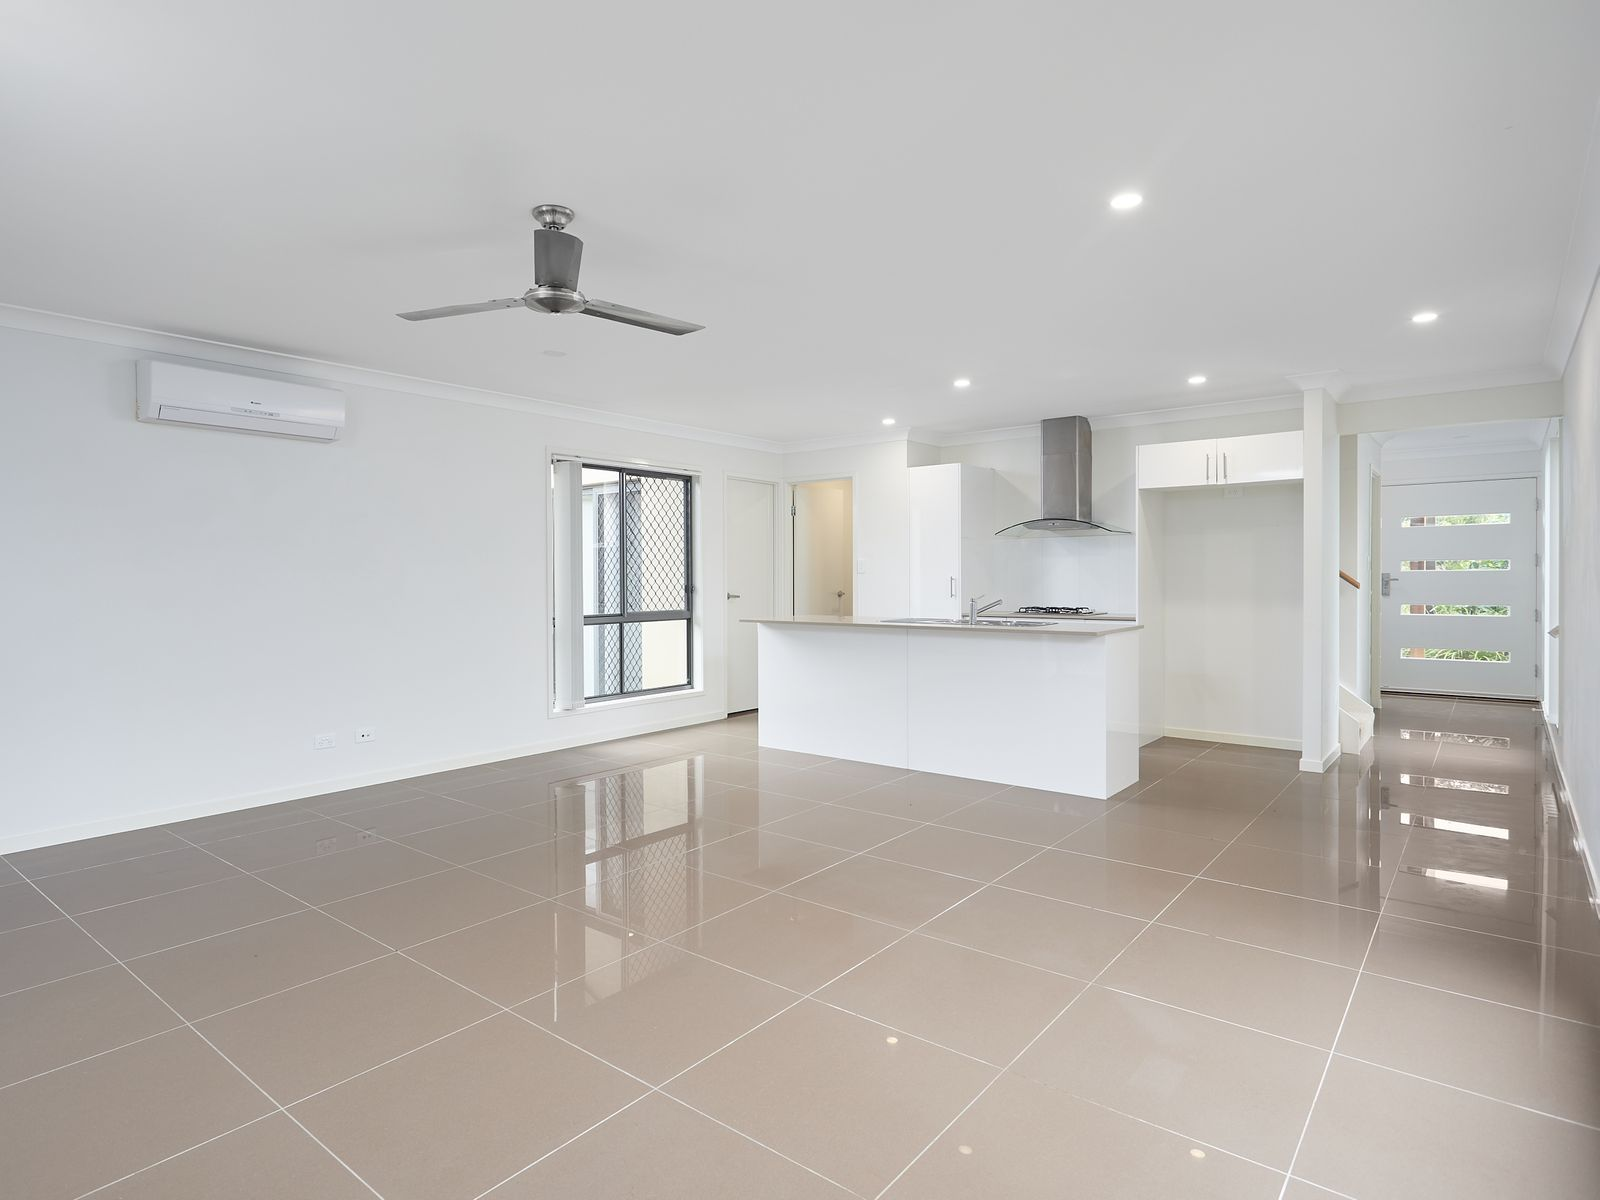 17 O'Reilly Drive, Coomera, QLD 4209